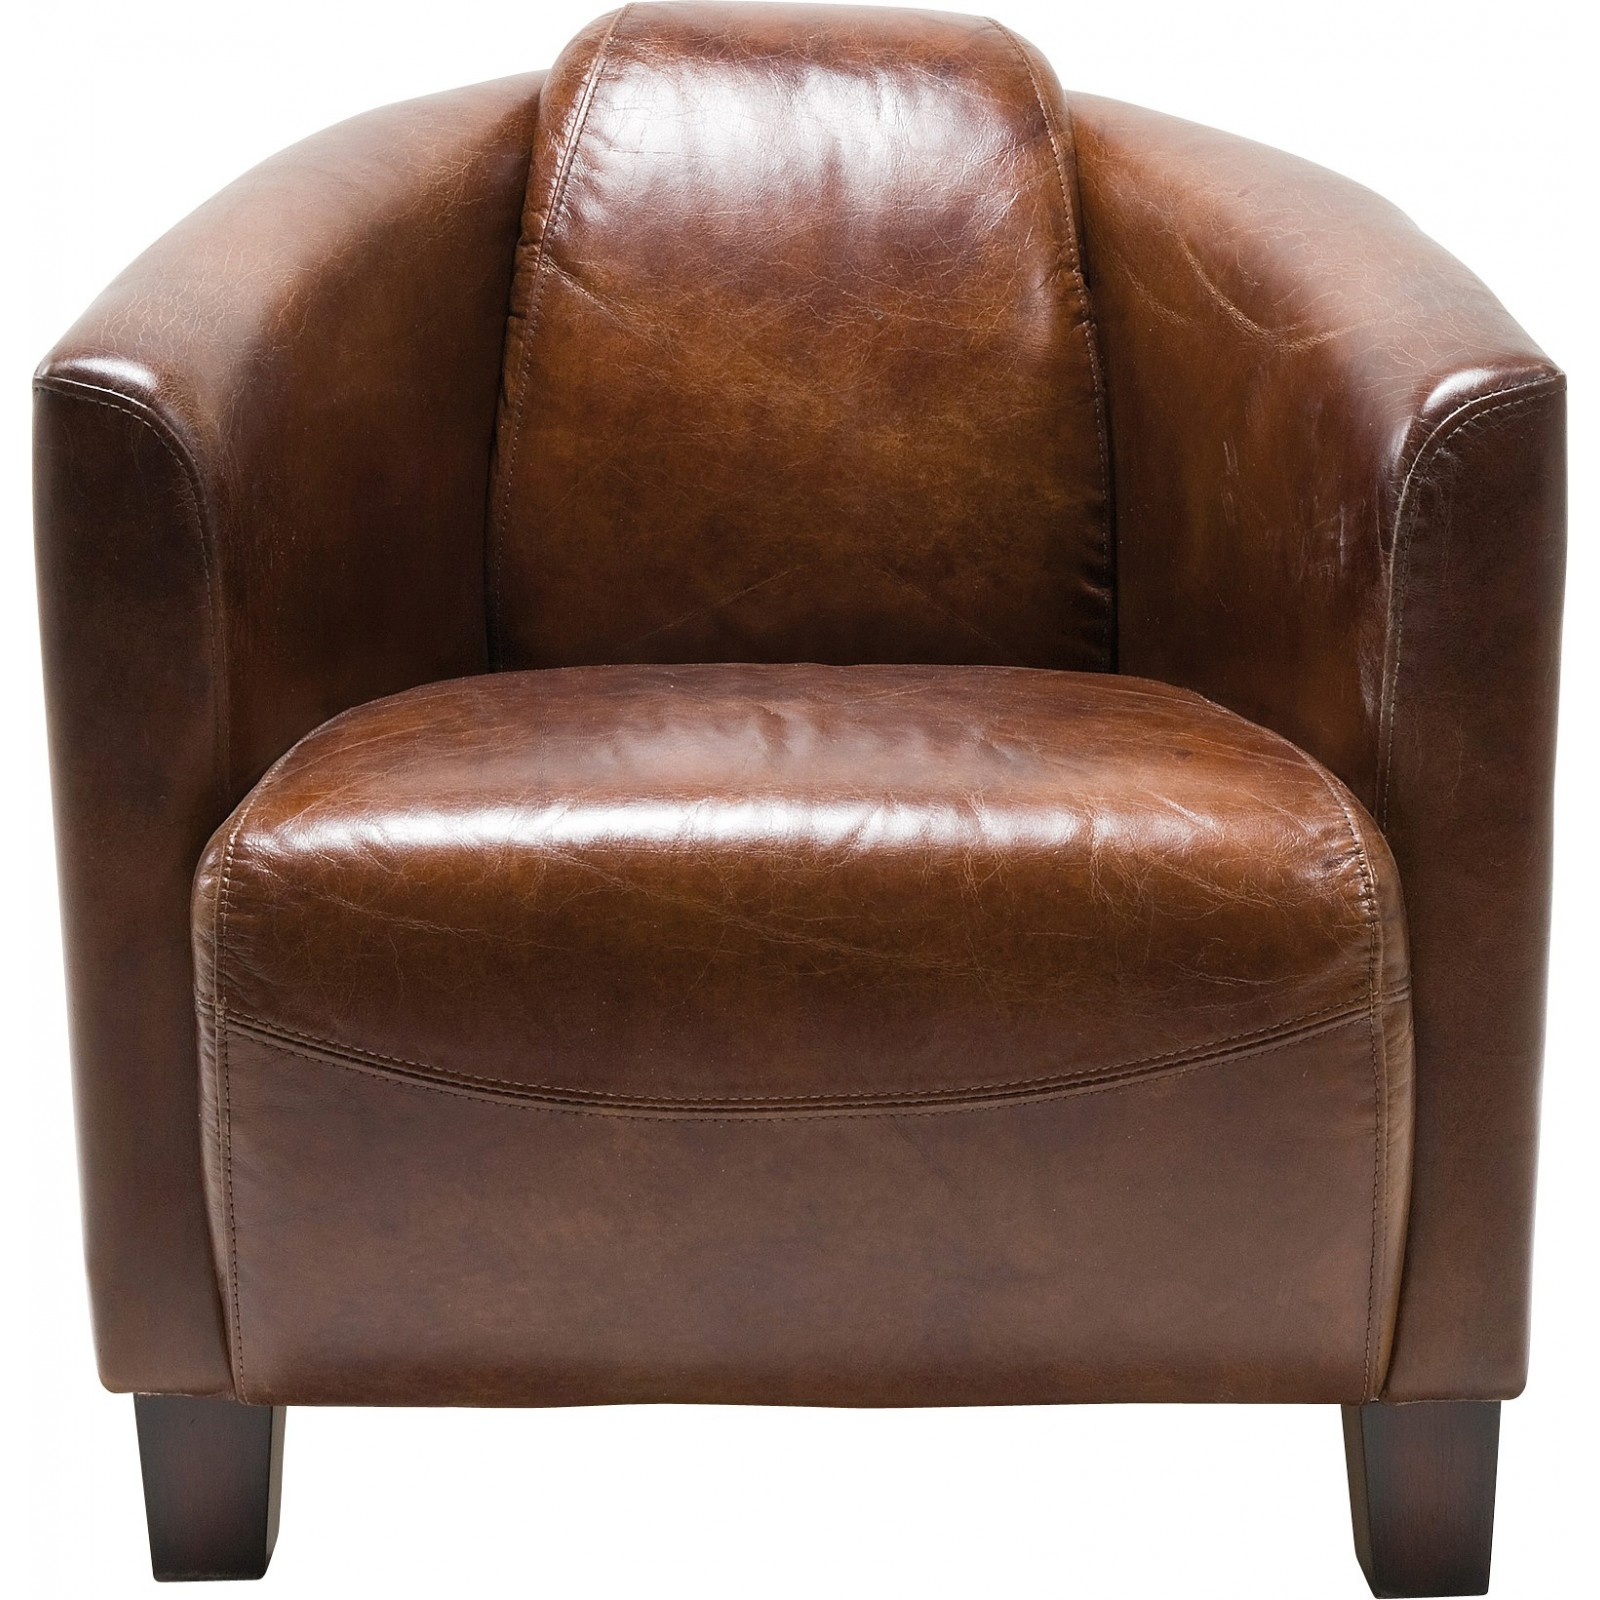 fauteuil vintage en cuir marron cigar lounge kare design. Black Bedroom Furniture Sets. Home Design Ideas